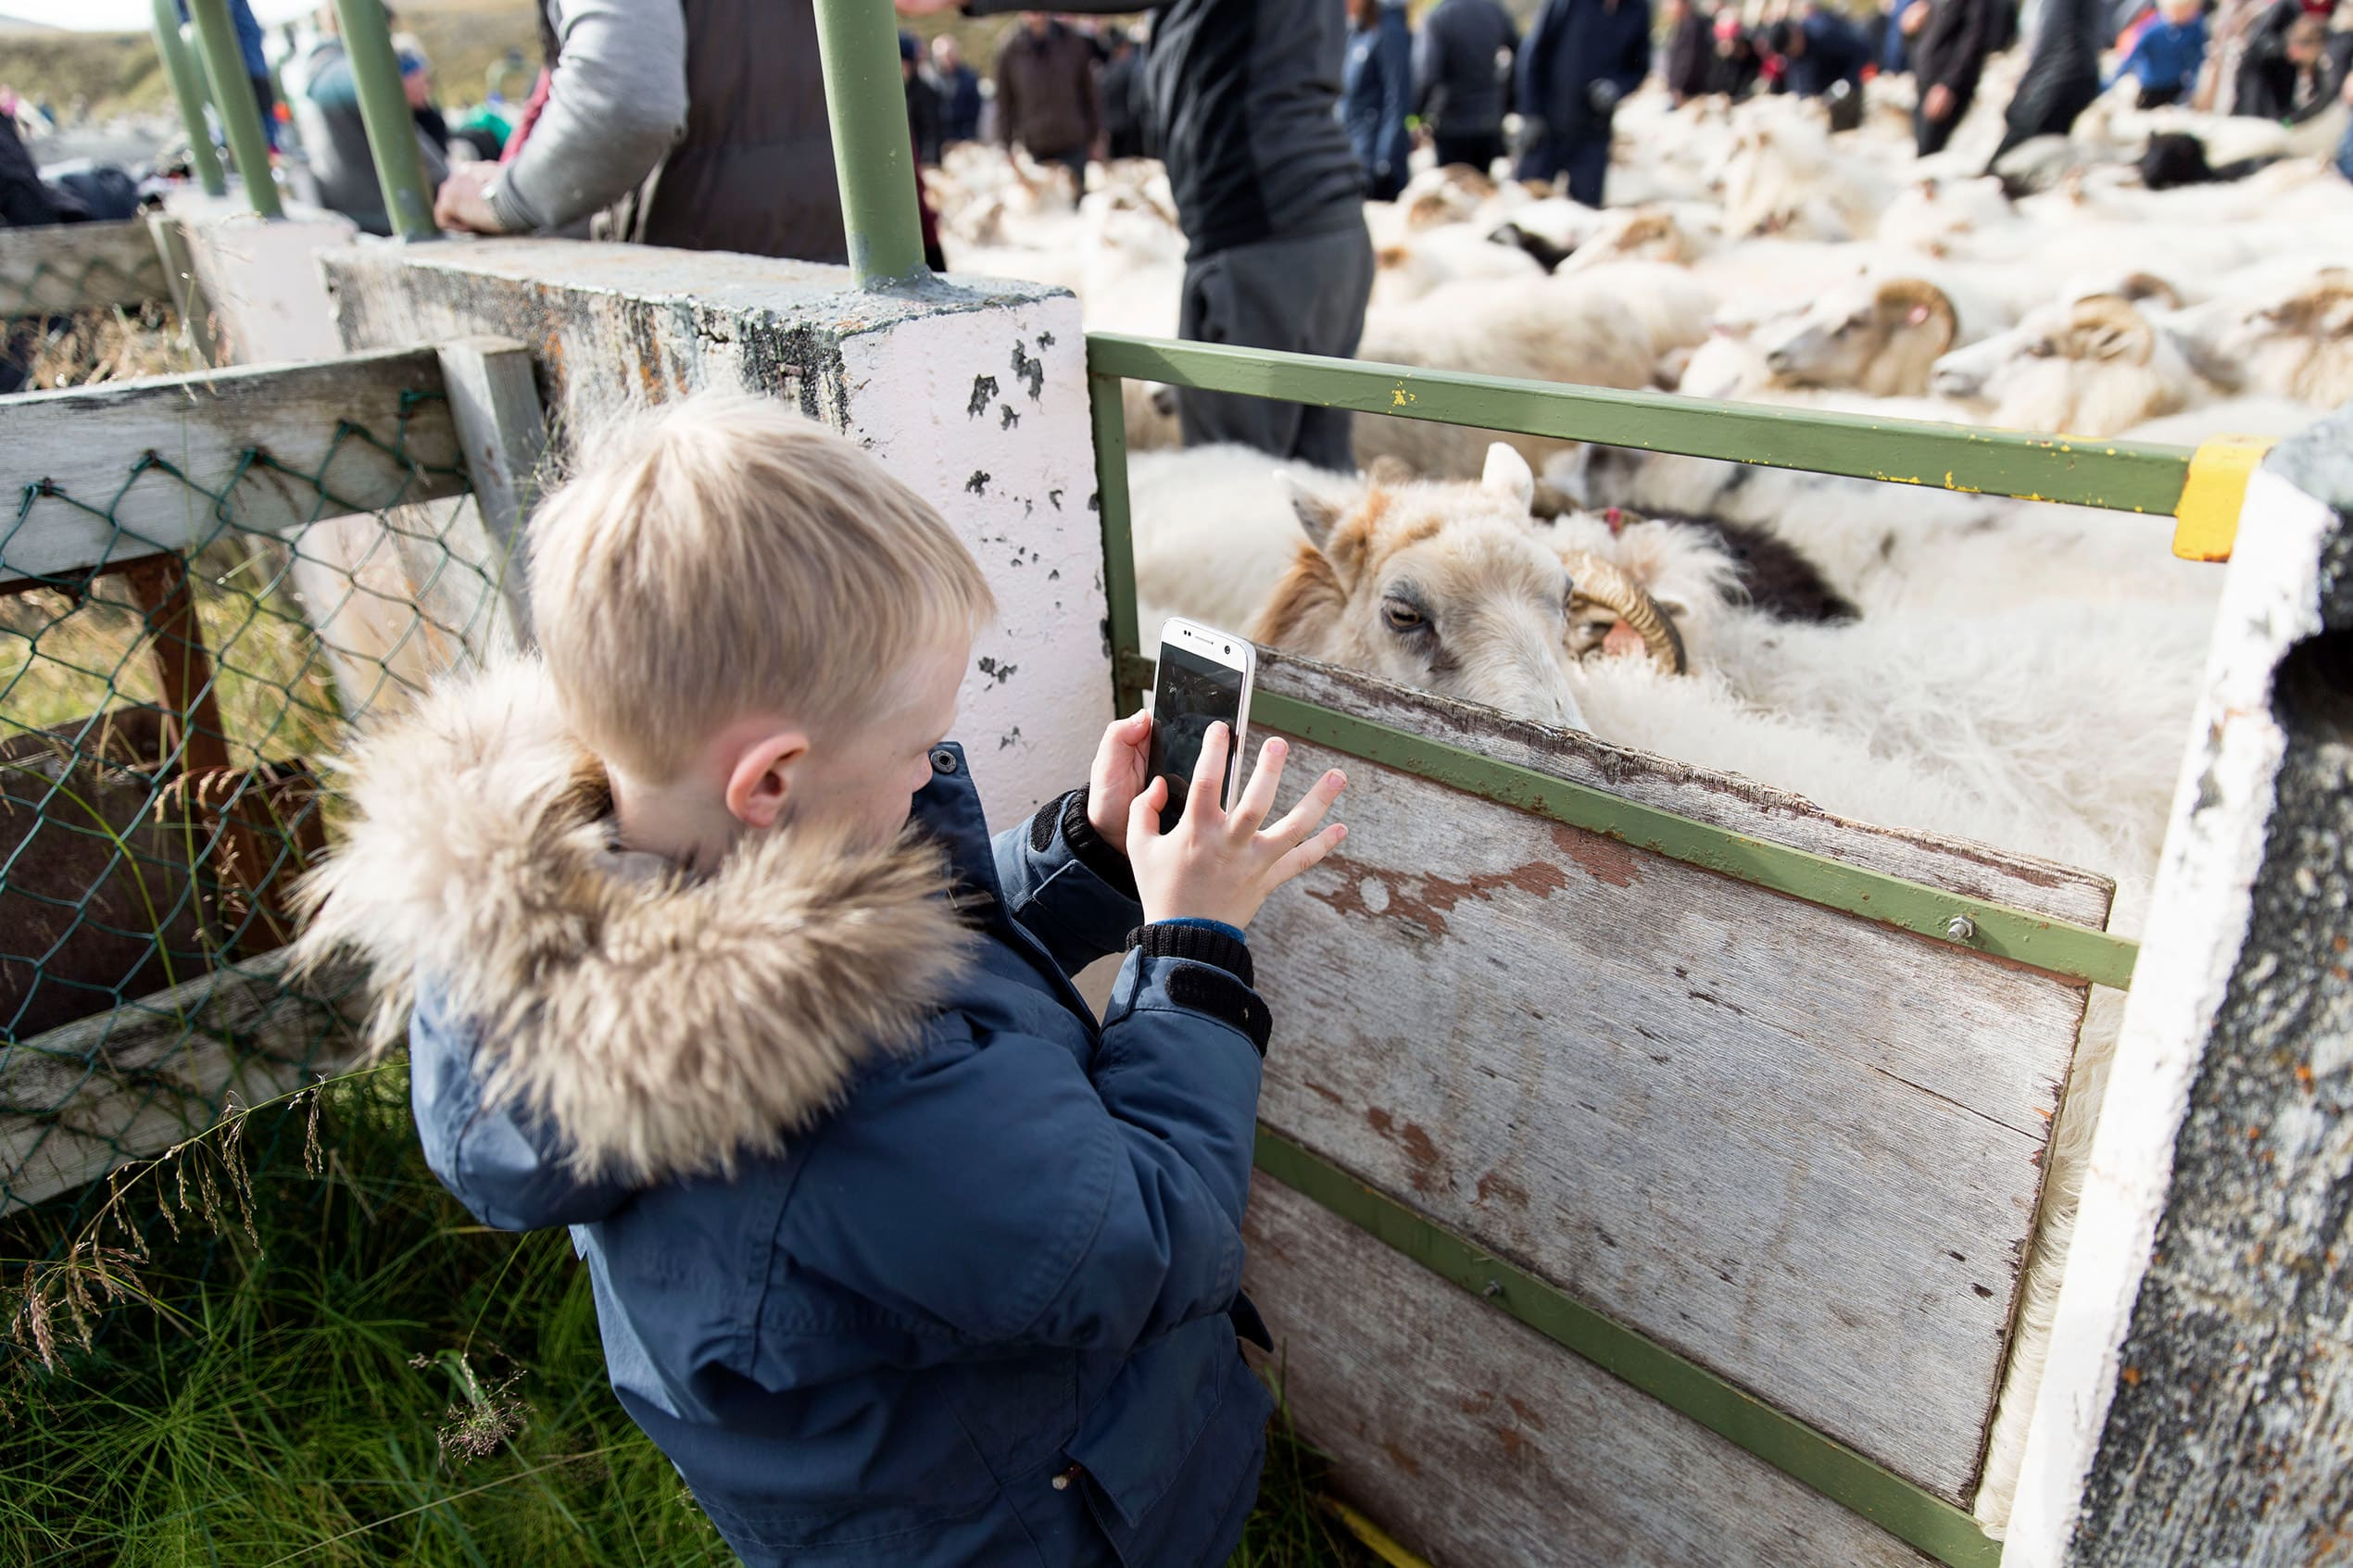 a child takes a picture of the sheep up close on a mobile phone